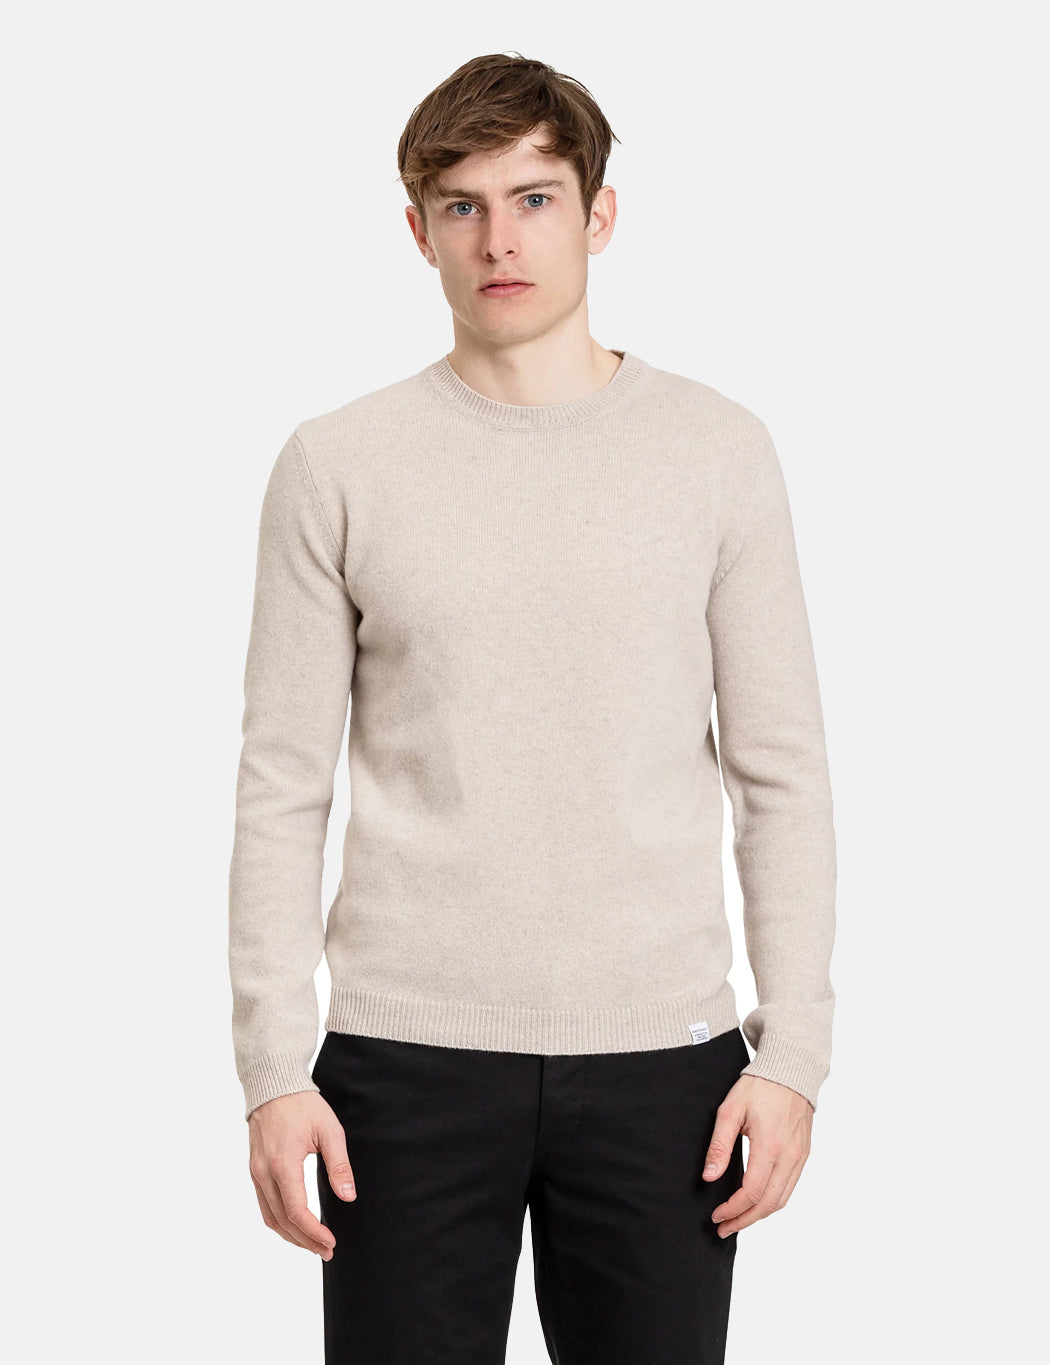 Norse Projects Sigfred Sweatshirt - Oatmeal Melange   URBAN EXCESS.